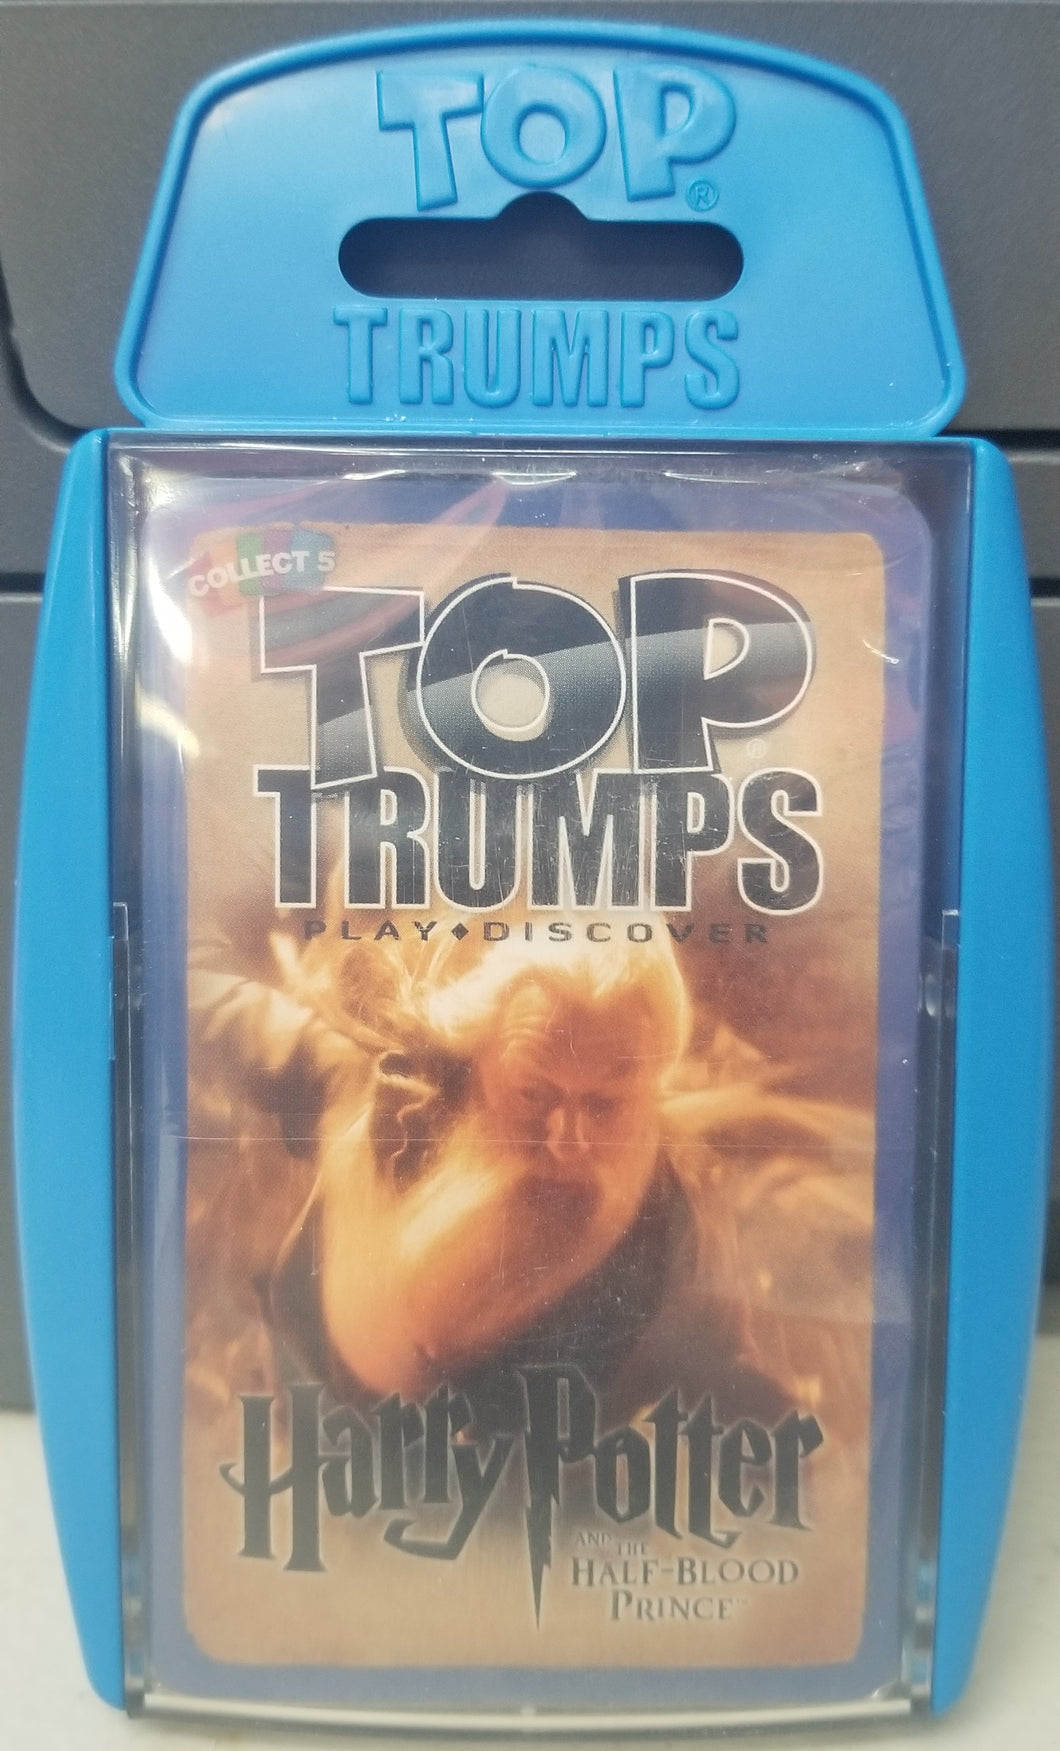 Harry Potter and the Half-Blood Prince - Top Trumps